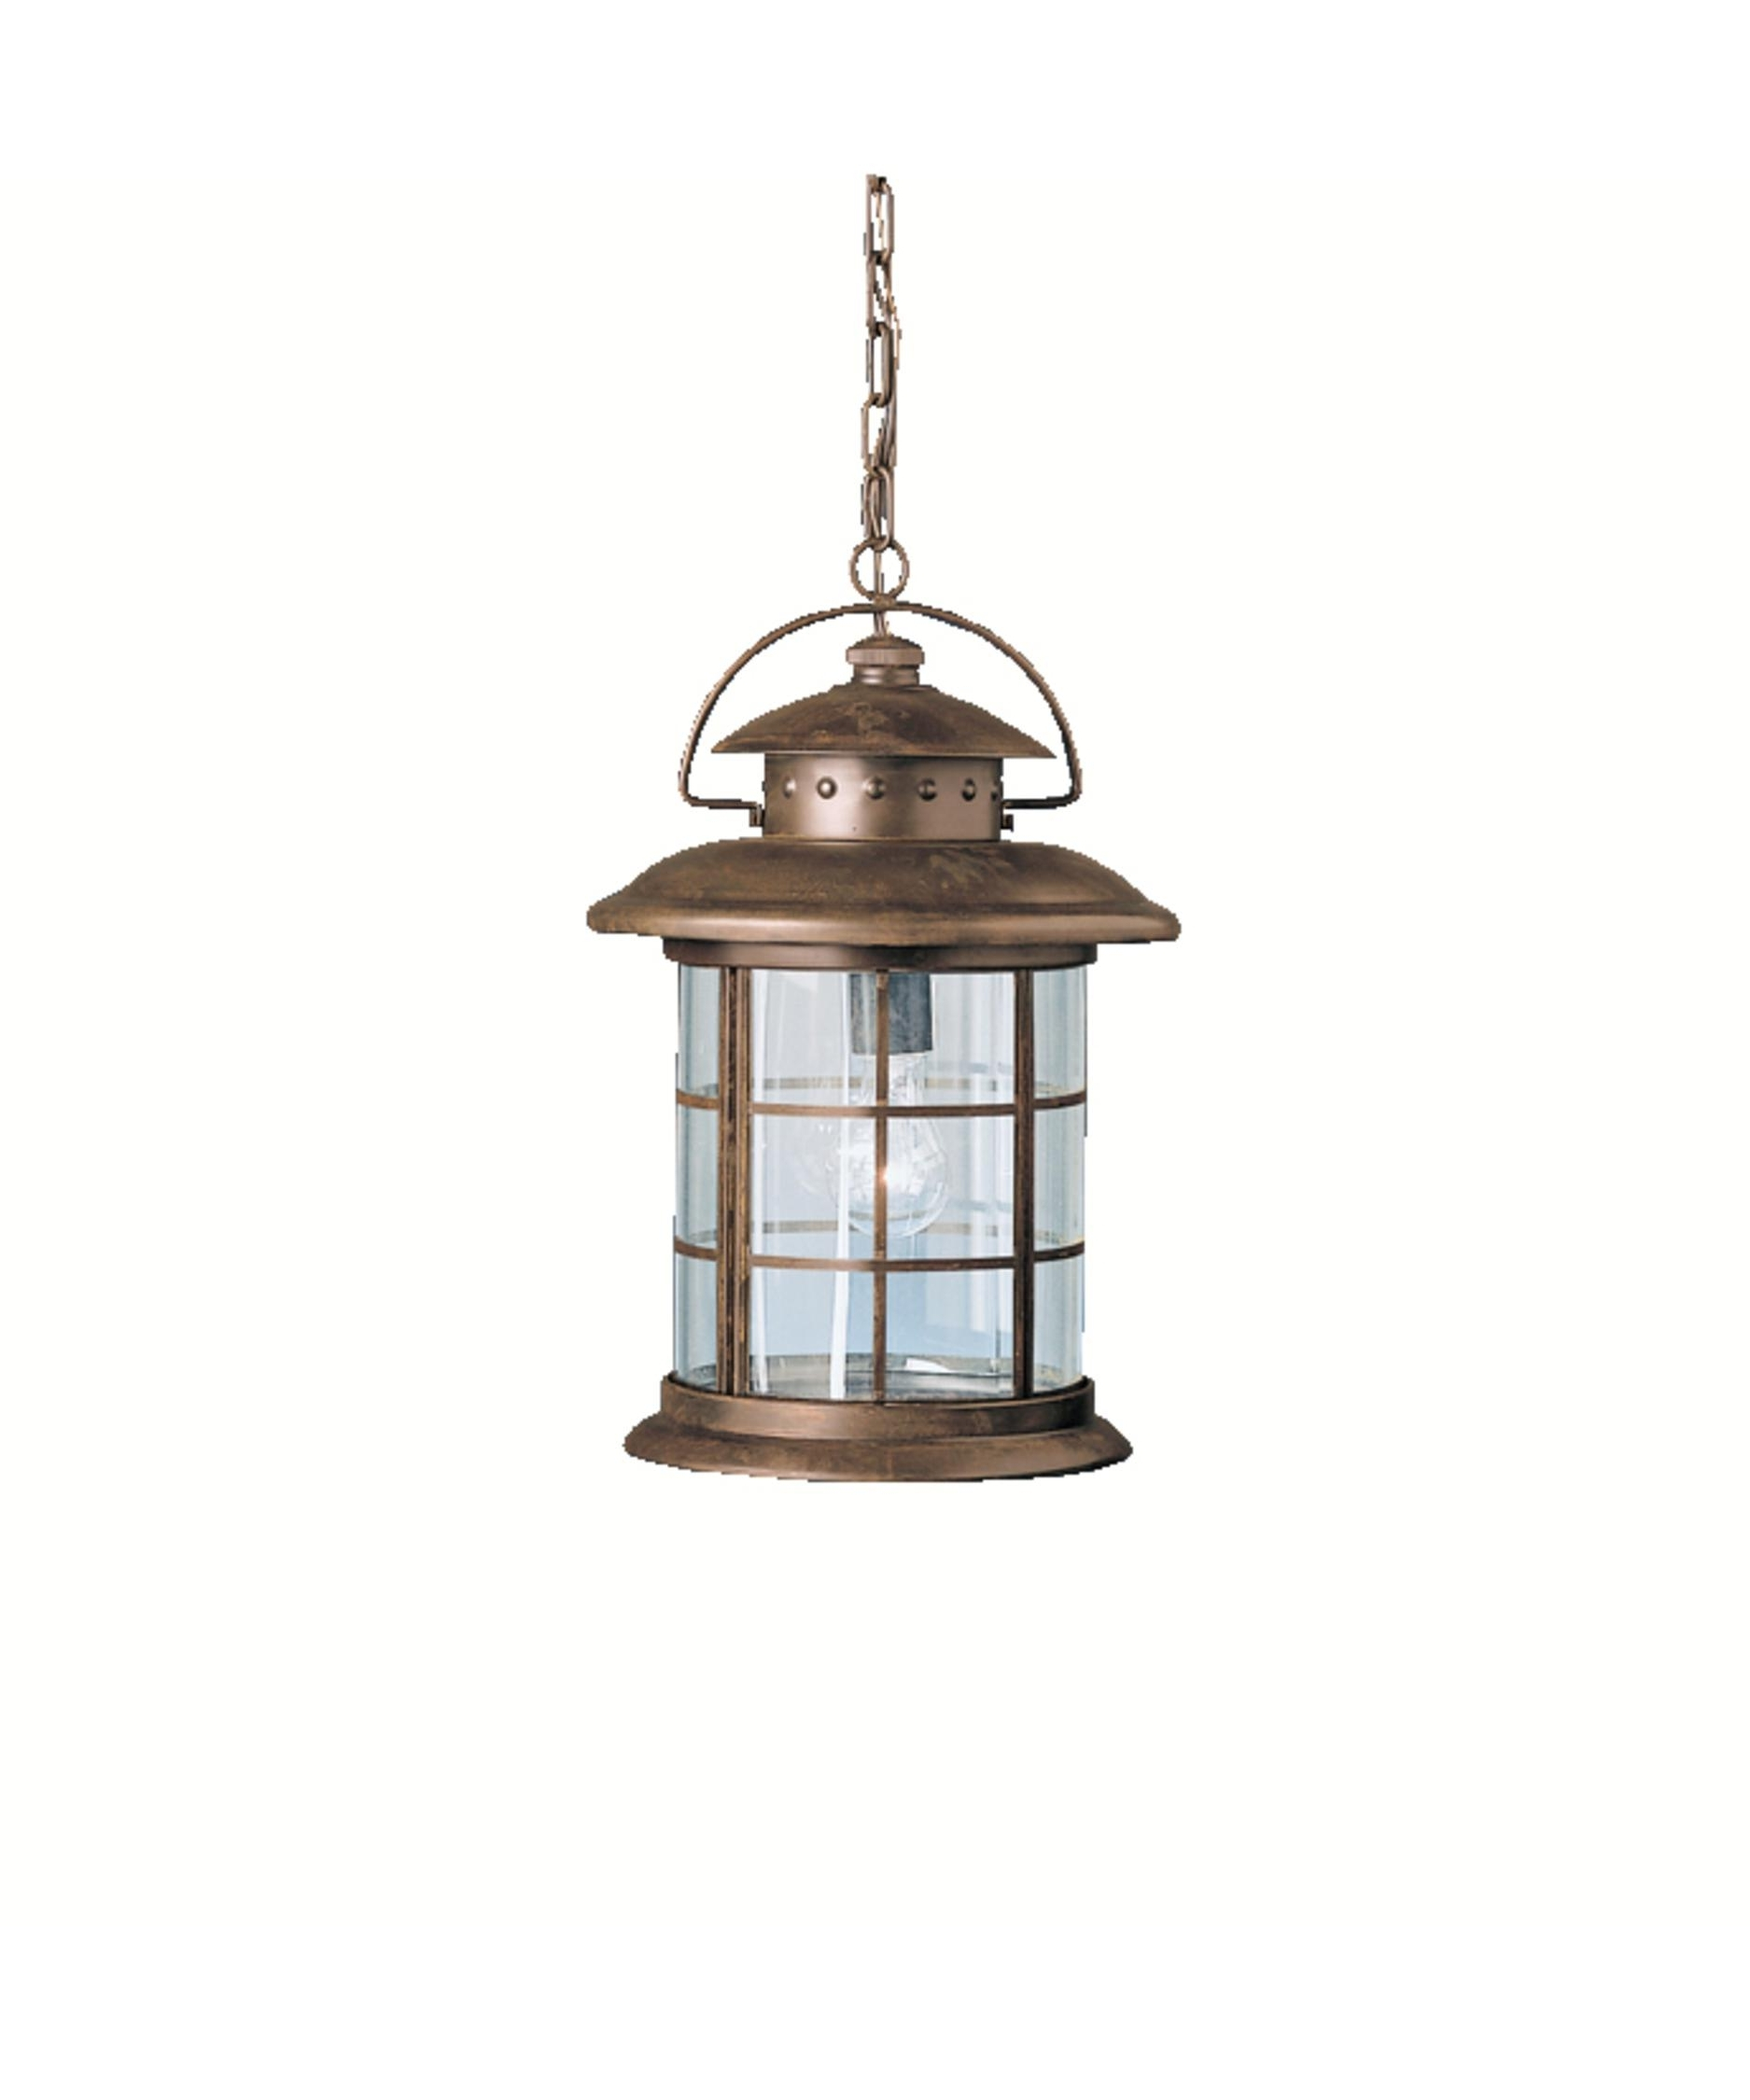 Outdoor Pendant Kichler Lighting Inside Well Liked Kichler 9870 Rustic 11 Inch Wide 1 Light Outdoor Hanging Lantern (View 12 of 20)